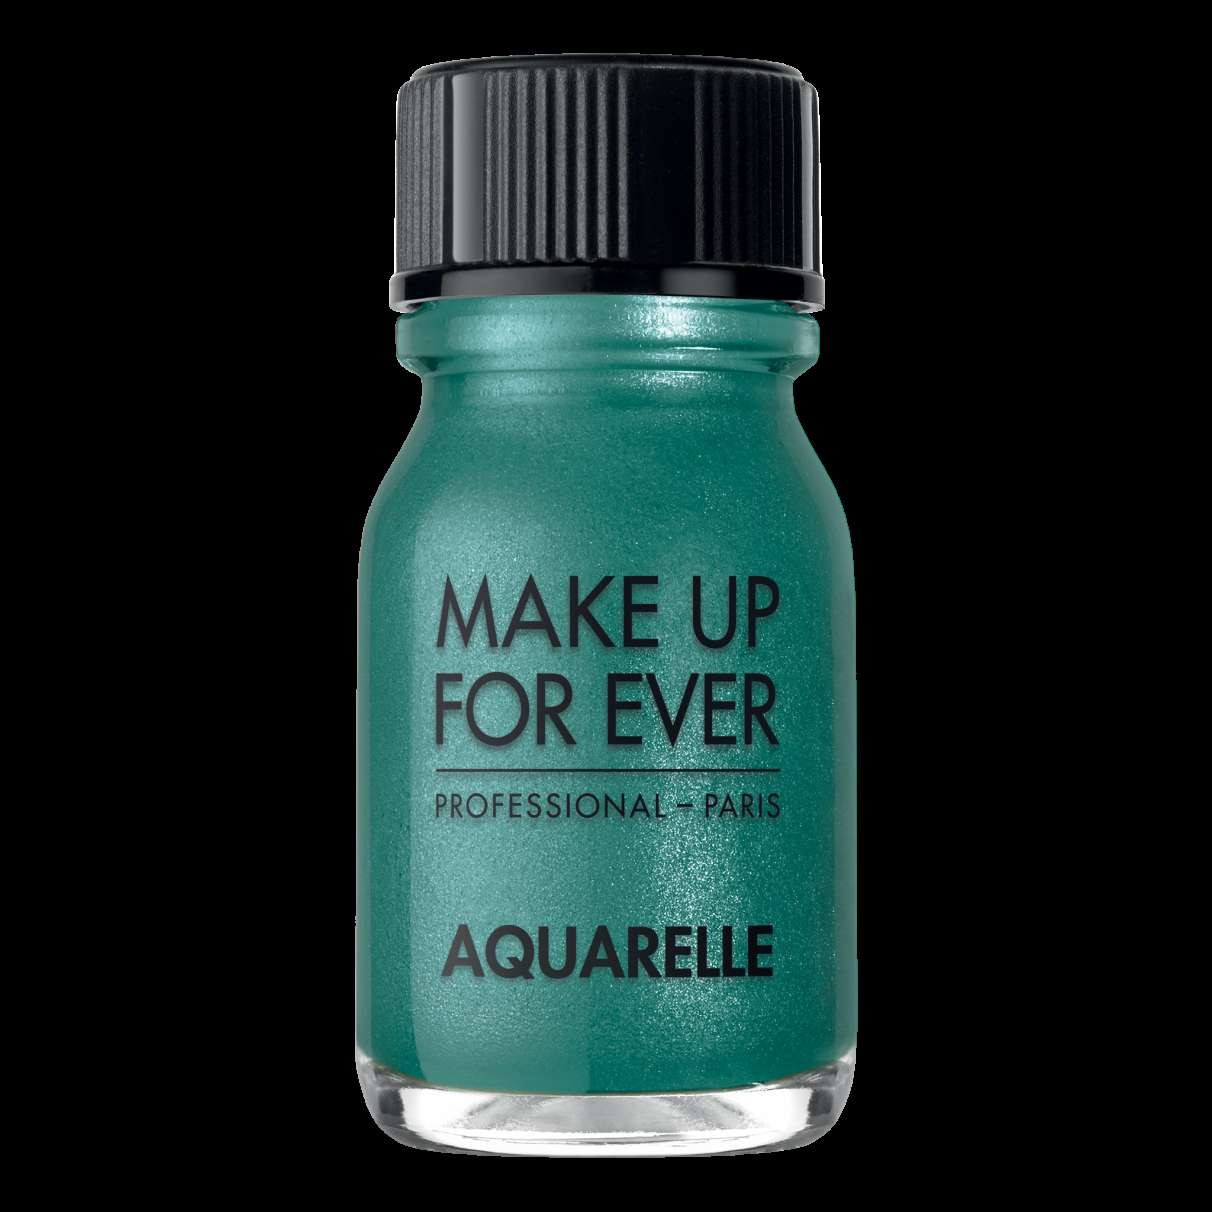 Aquarelle di Make up for ever